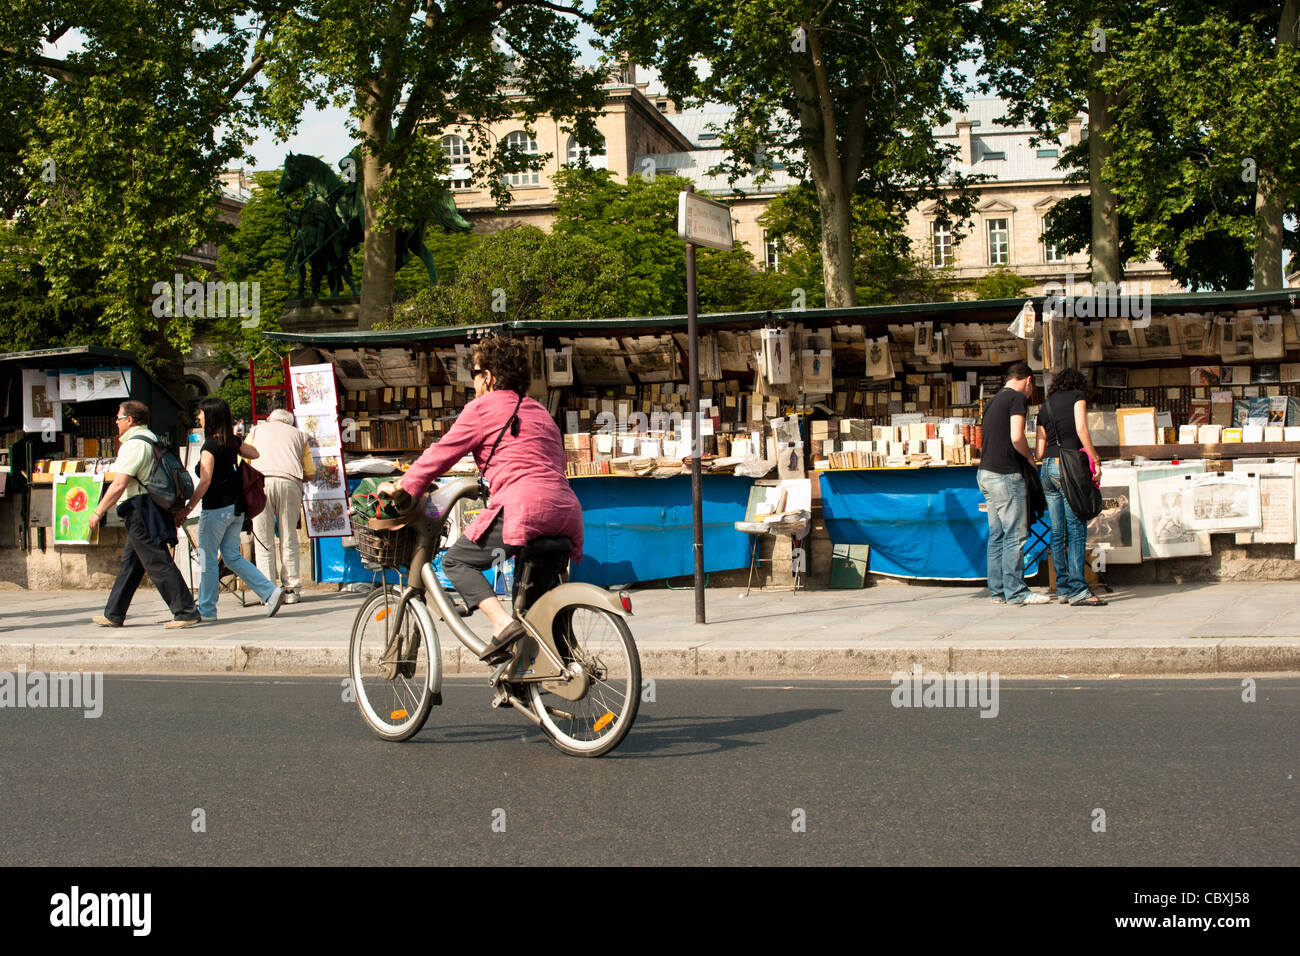 Cyclist in Paris traveling past a Bookseller on the Quai  de Montebello along the banks of the Seine - Stock Image